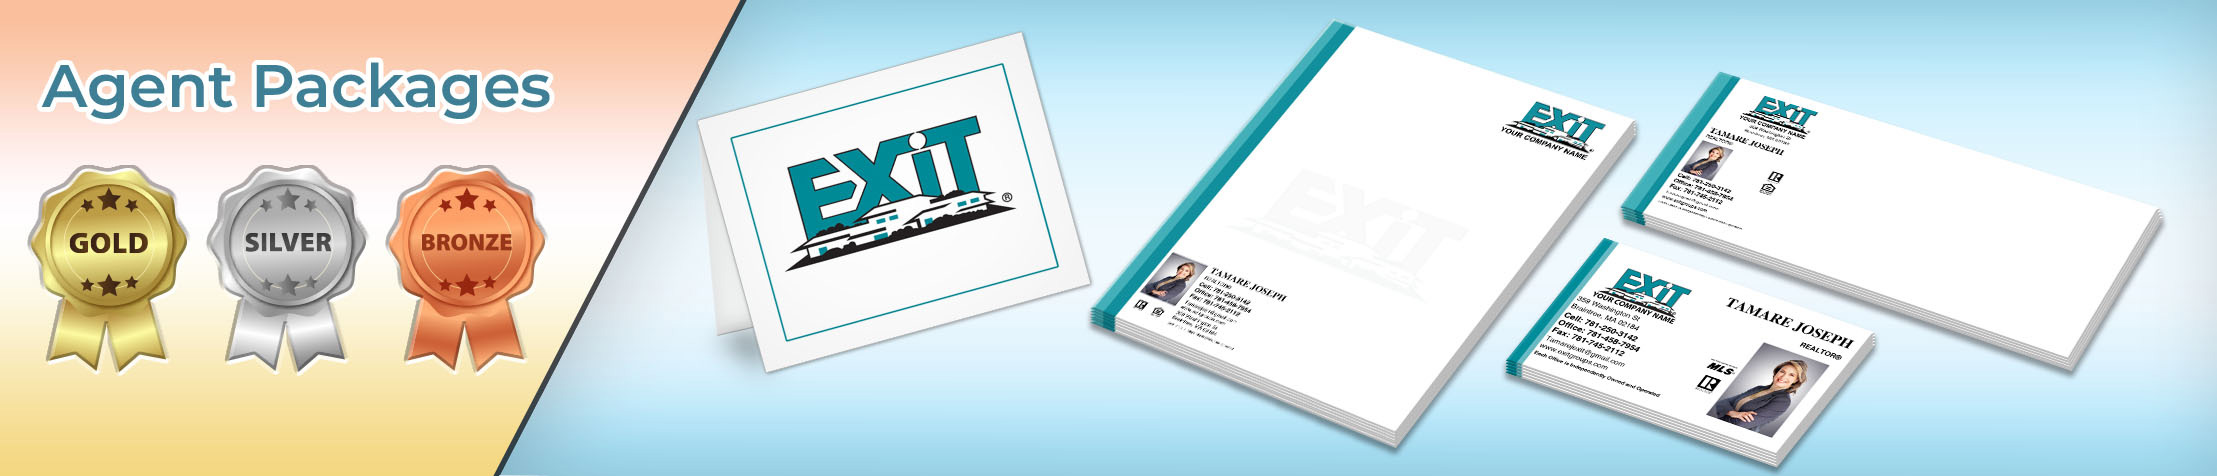 Exit Realty Real Estate Gold, Silver and Bronze Agent Packages - Exit Realty approved vendor personalized business cards, letterhead, envelopes and note cards | BestPrintBuy.com